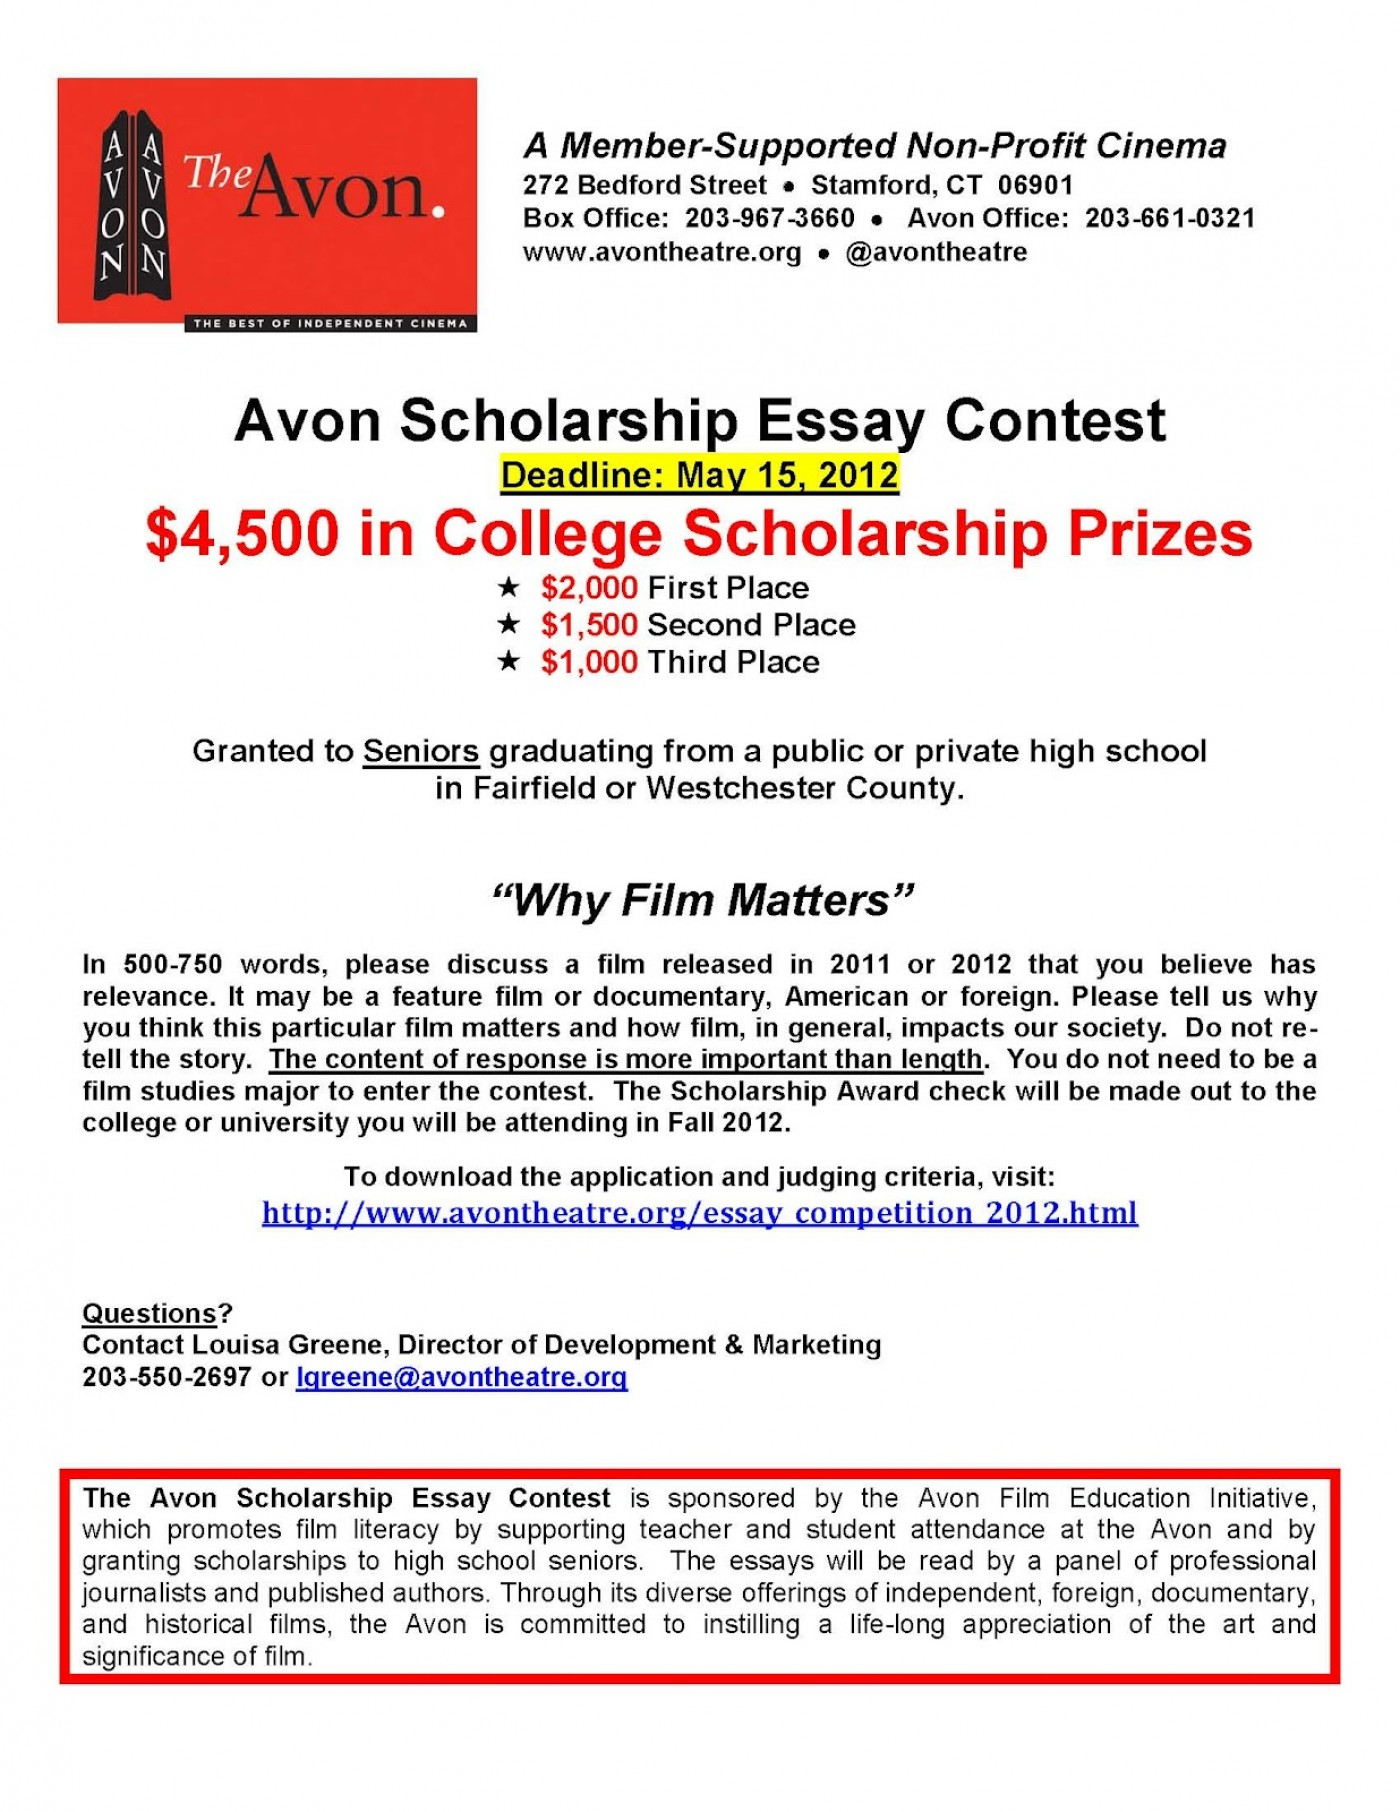 002 Essay Example No Scholarships College Scholarship Prowler Free For High School Seniors Avonscholarshipessaycontest2012 In Texas California Class Of Short Exceptional December 2018 Undergraduates 1400